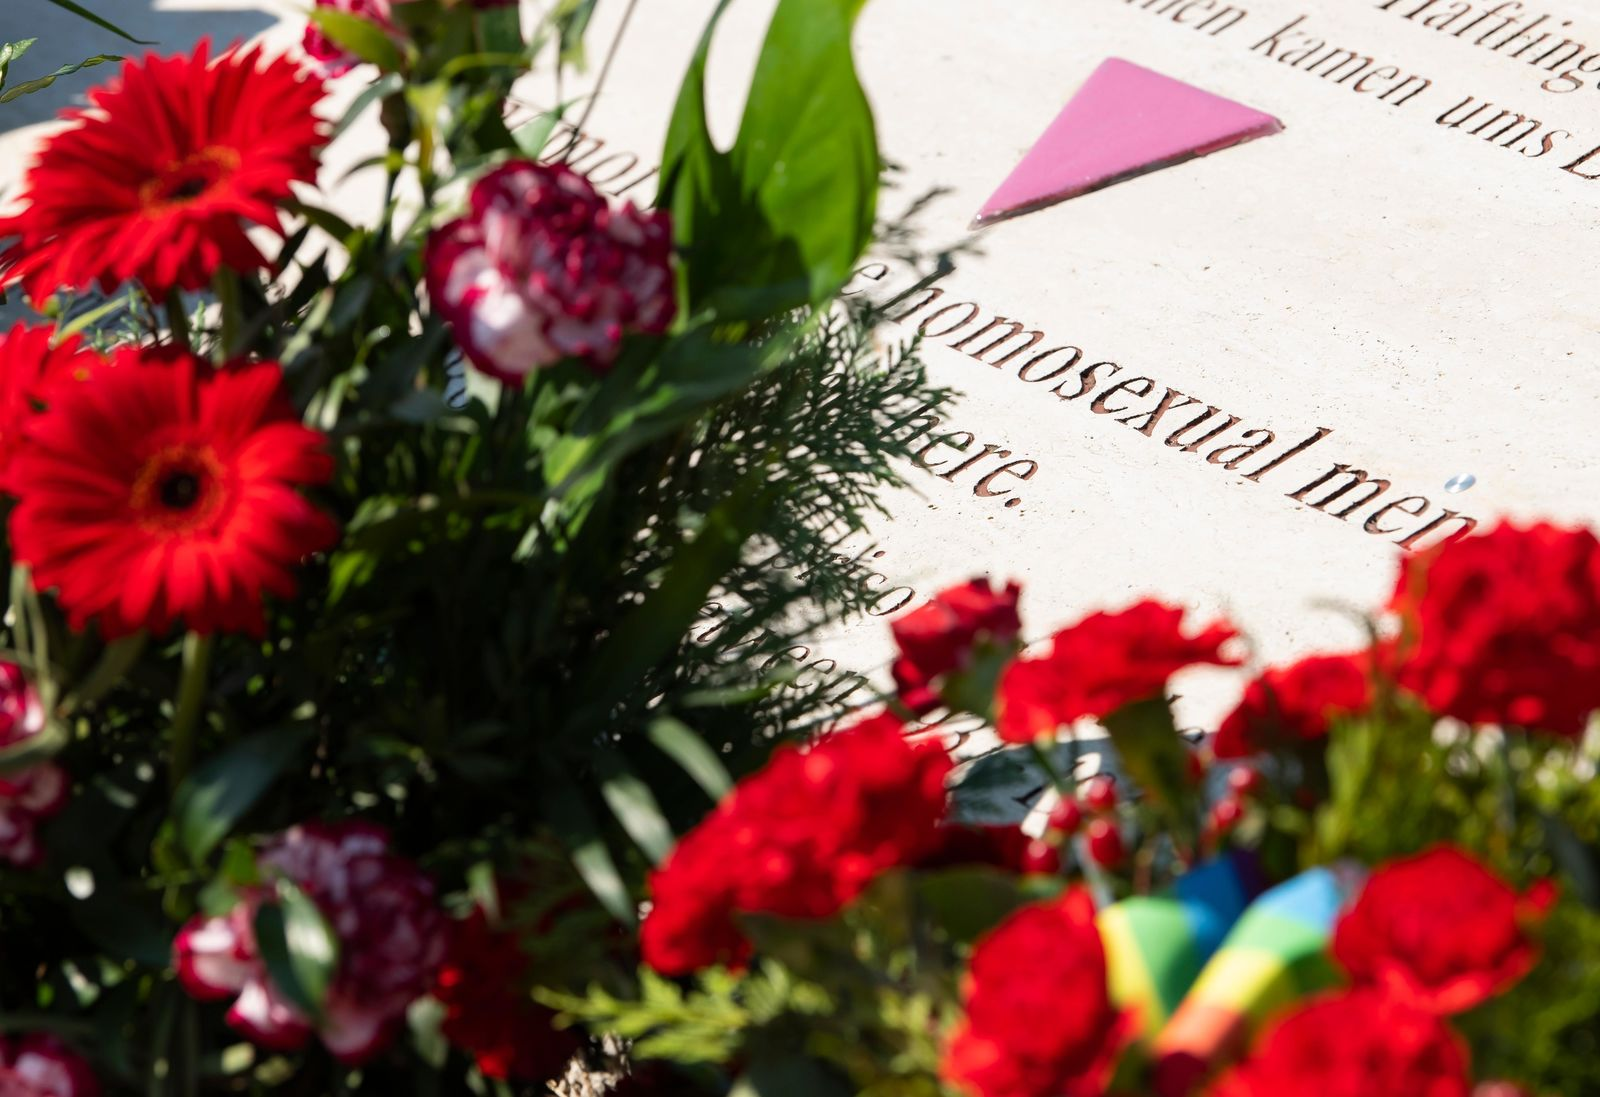 Flowers are placed at a memorial stone in remembrance for prisoners assigned a pink triangle in the former Nazi concentration camp Buchenwald within the Christopher Street Day in Weimar, Germany, Sunday, June 23, 2019. There were 650 prisoners assigned a pink triangle in the Buchenwald concentration camp between 1937 and 1945. Many of them lost their lives. (AP Photo/Jens Meyer)